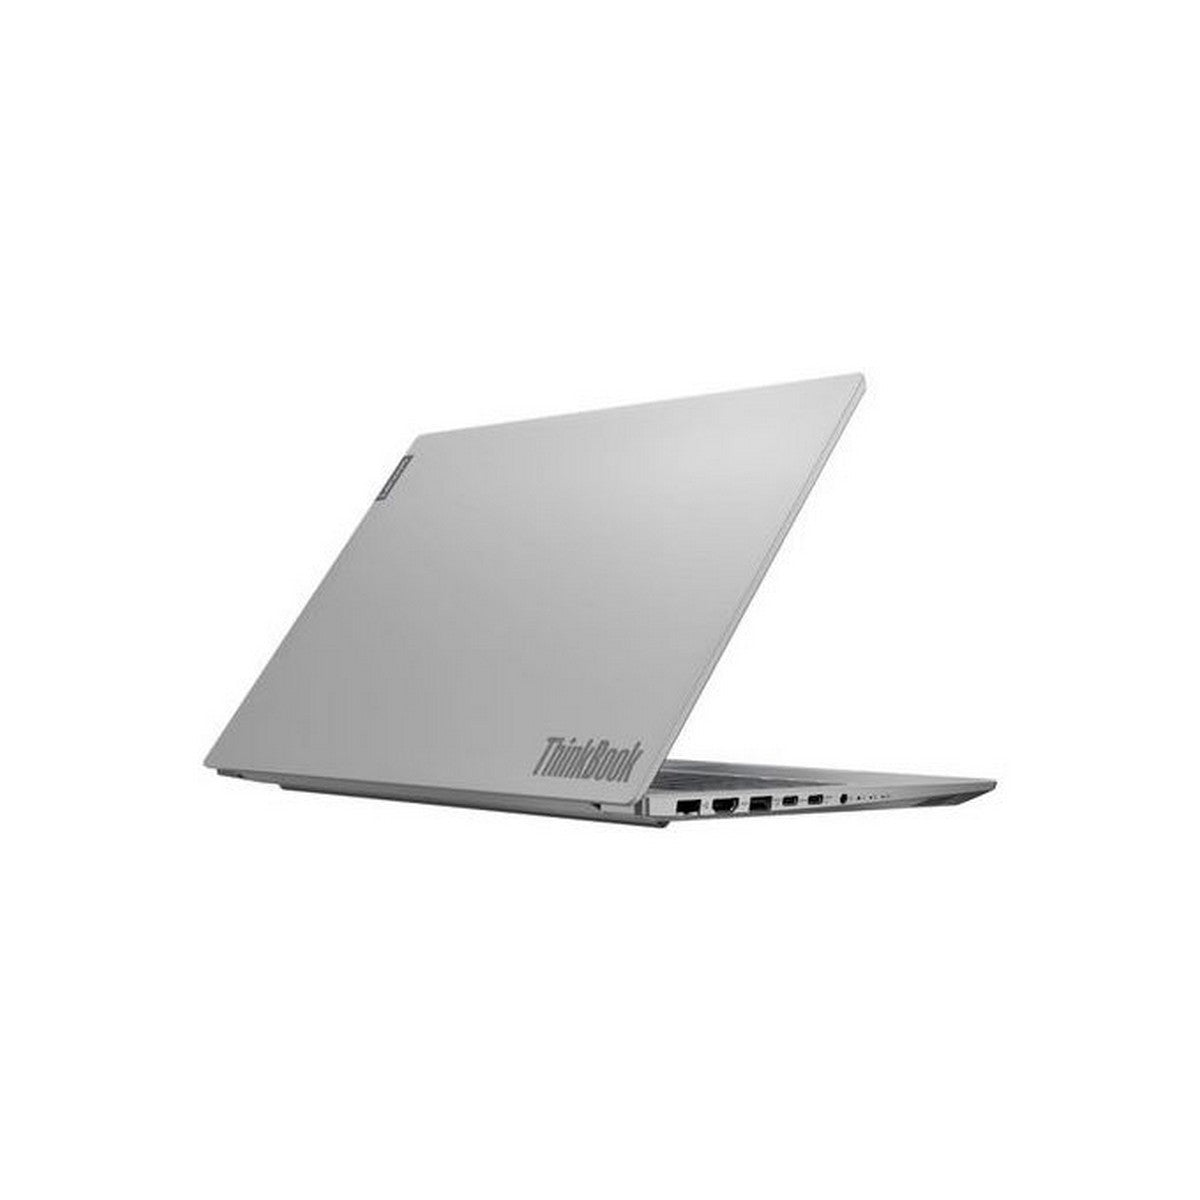 Lenovo ThinkBook 14 Laptop 14'' FHD , Intel Core i5 i5-1035G1 1.0GHz up to 3.6GHz 6MB cache, 8GB RAM, Radeon 620 2GB GPU, 1TB HDD, Windows 10 Pro, Mineral Grey